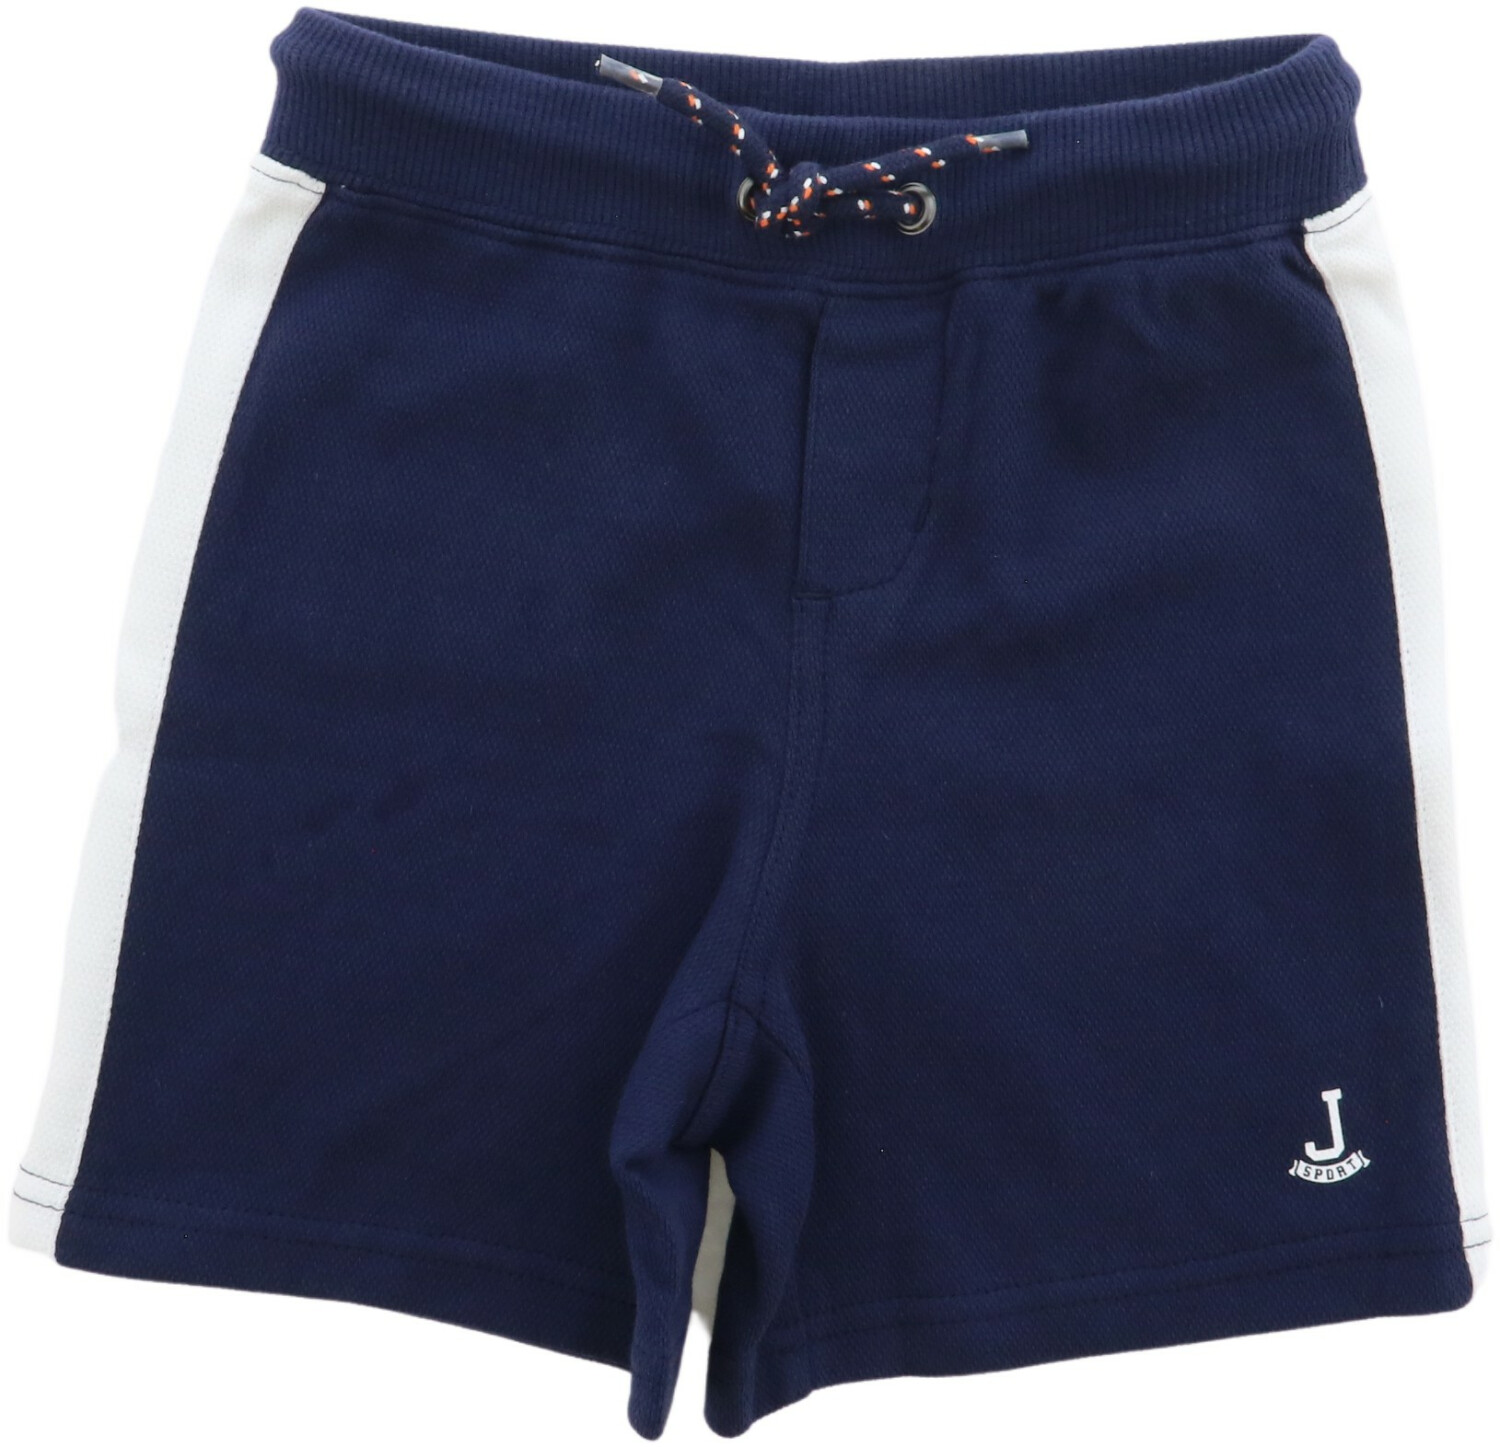 Janie And Jack Boy's Navy Knit Short - 18-24 Months